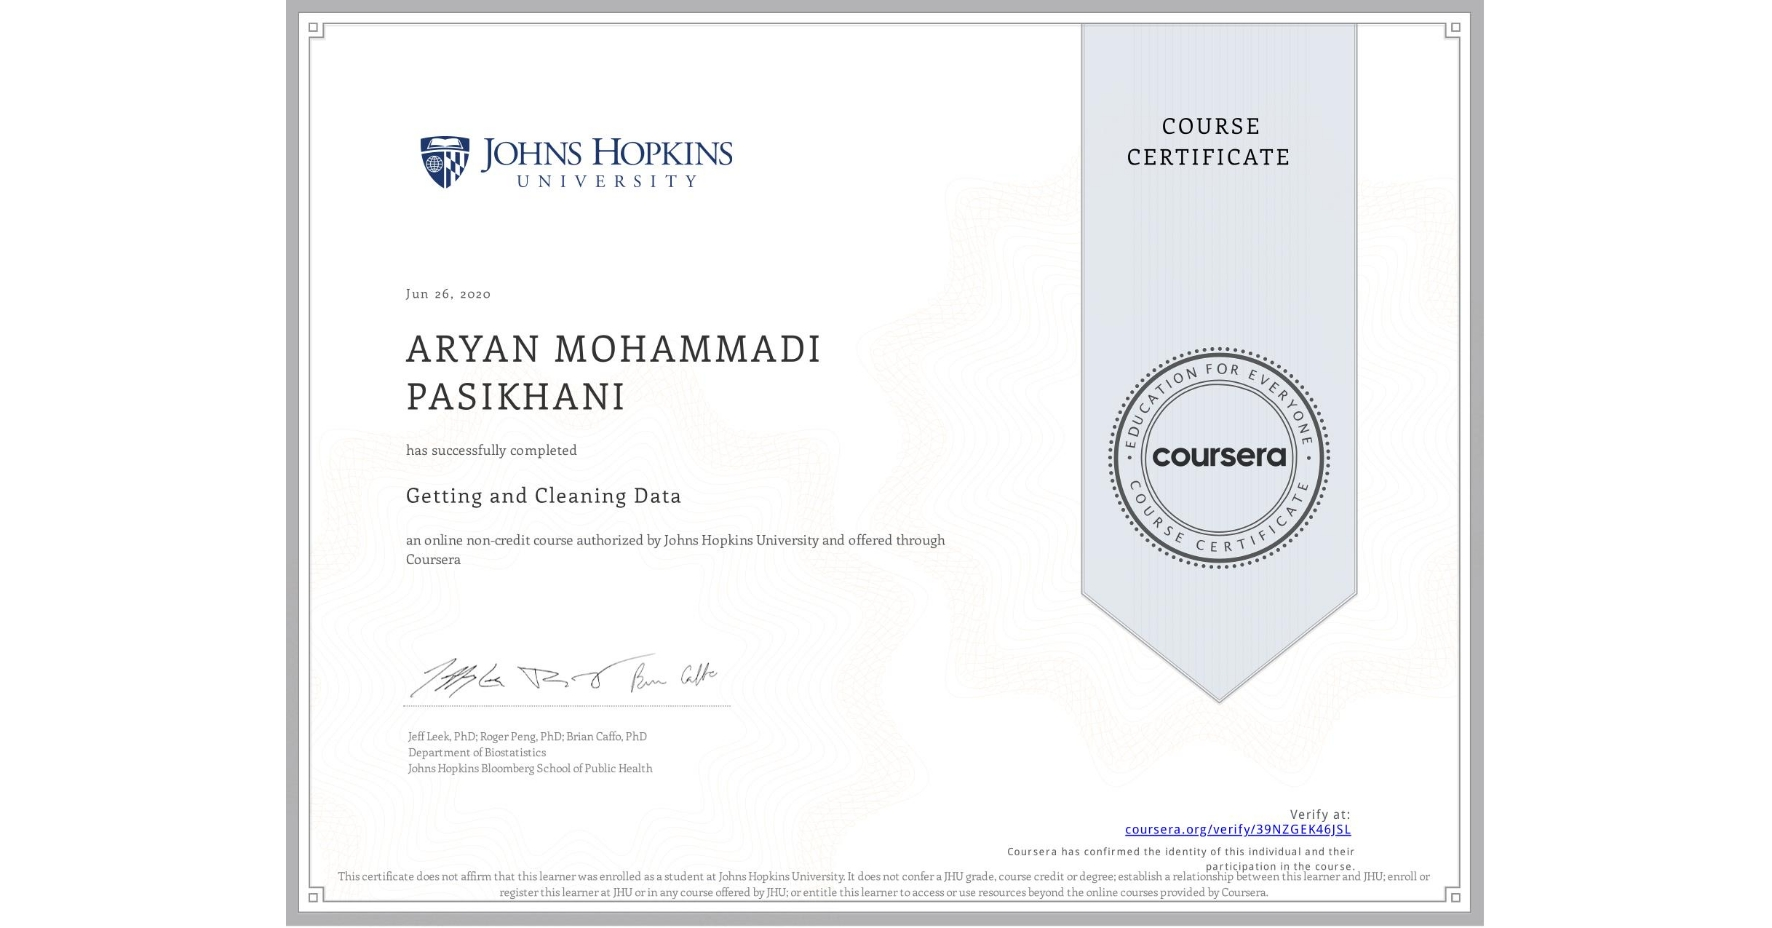 View certificate for ARYAN MOHAMMADI PASIKHANI, Getting and Cleaning Data, an online non-credit course authorized by Johns Hopkins University and offered through Coursera